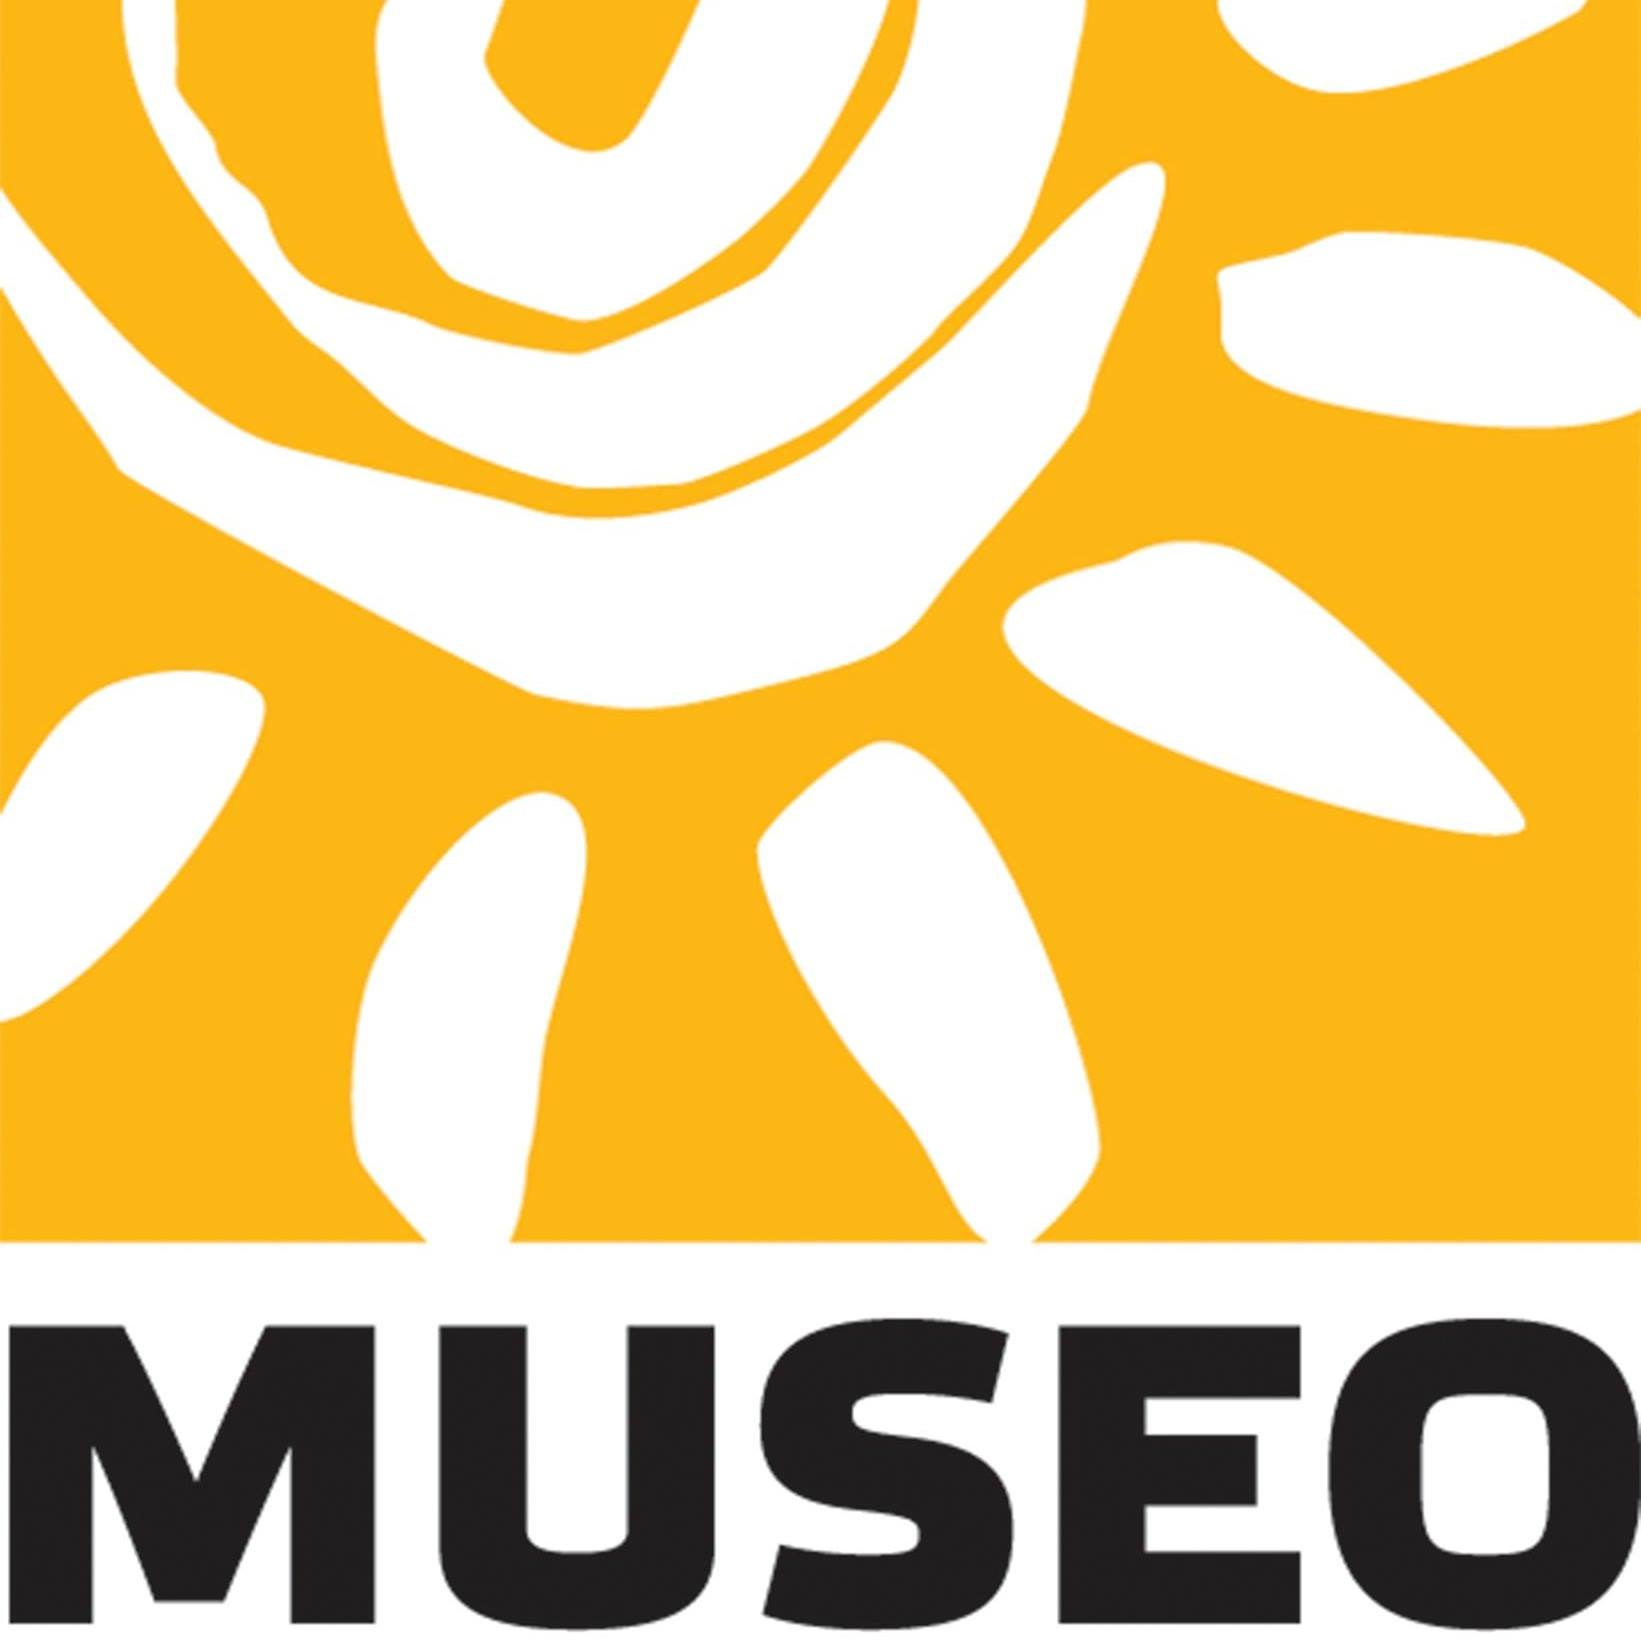 - Museo de las Americas educates our community about the diversity of Latino Americano art and culture from ancient to contemporary through innovative exhibitions and programs. Lighthouse is proud to collaborate with Museo to present a drop-in writing program on October 28th